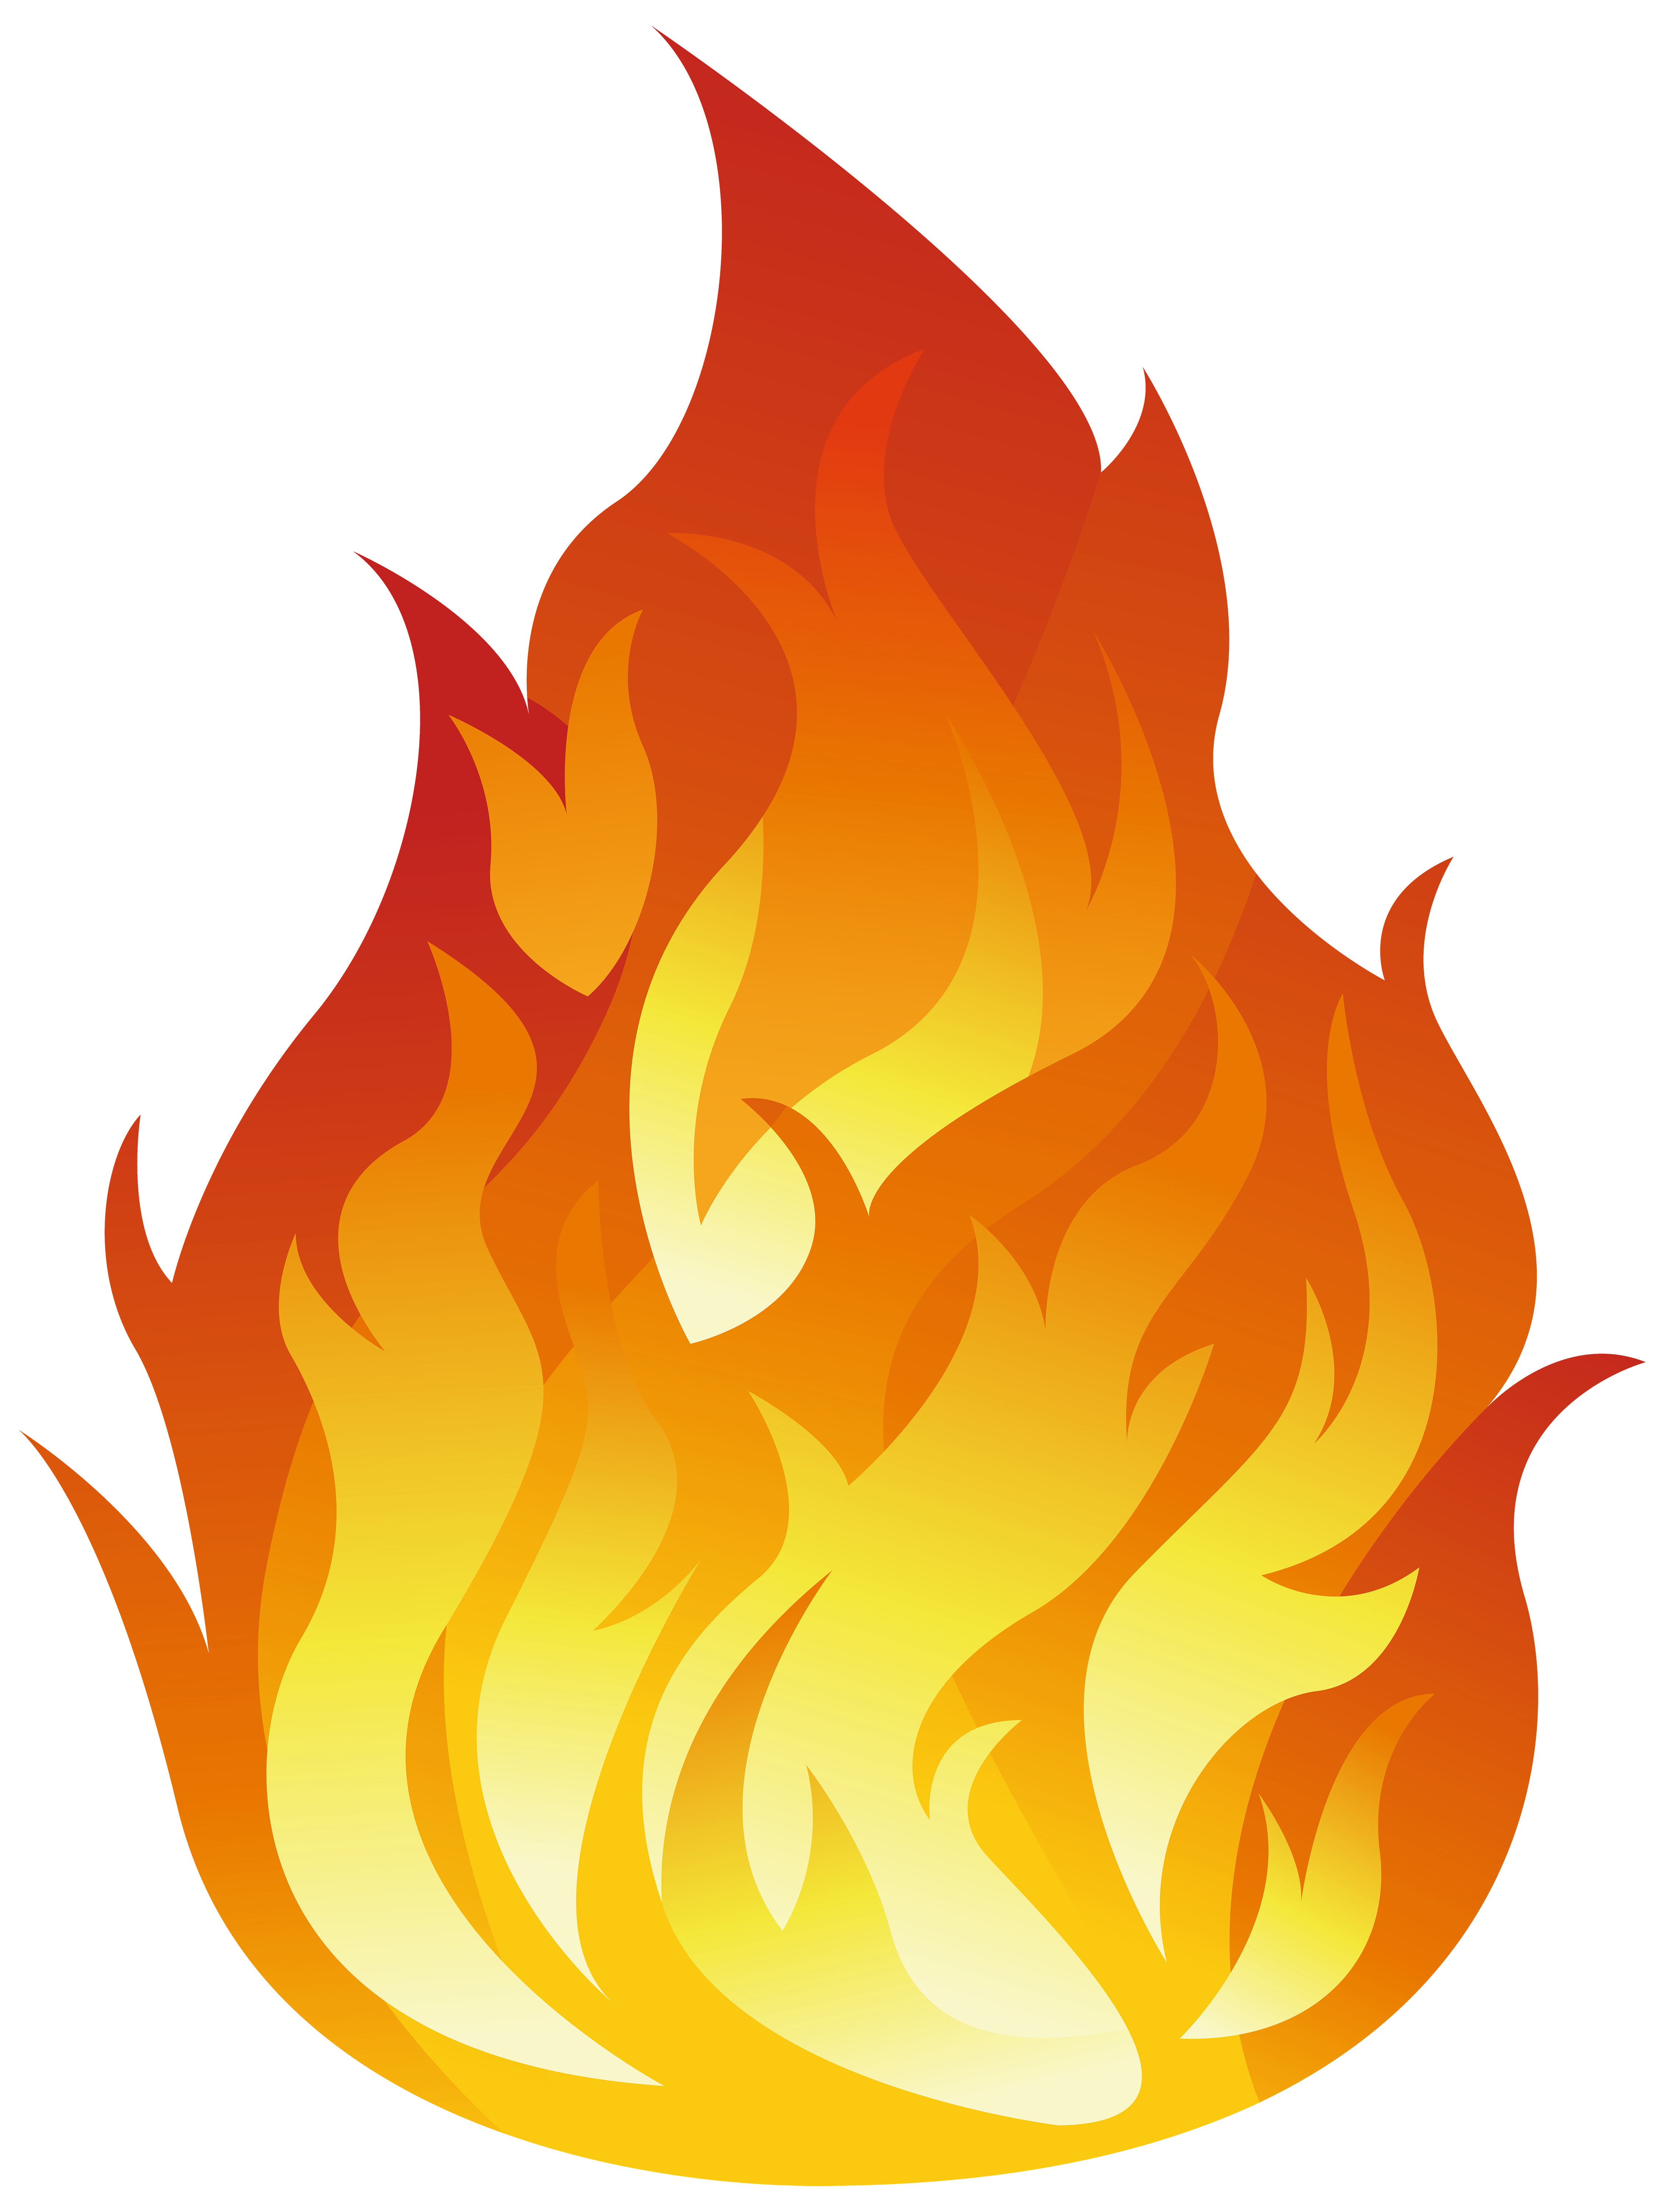 Flame transparent png clip. Potato clipart high re